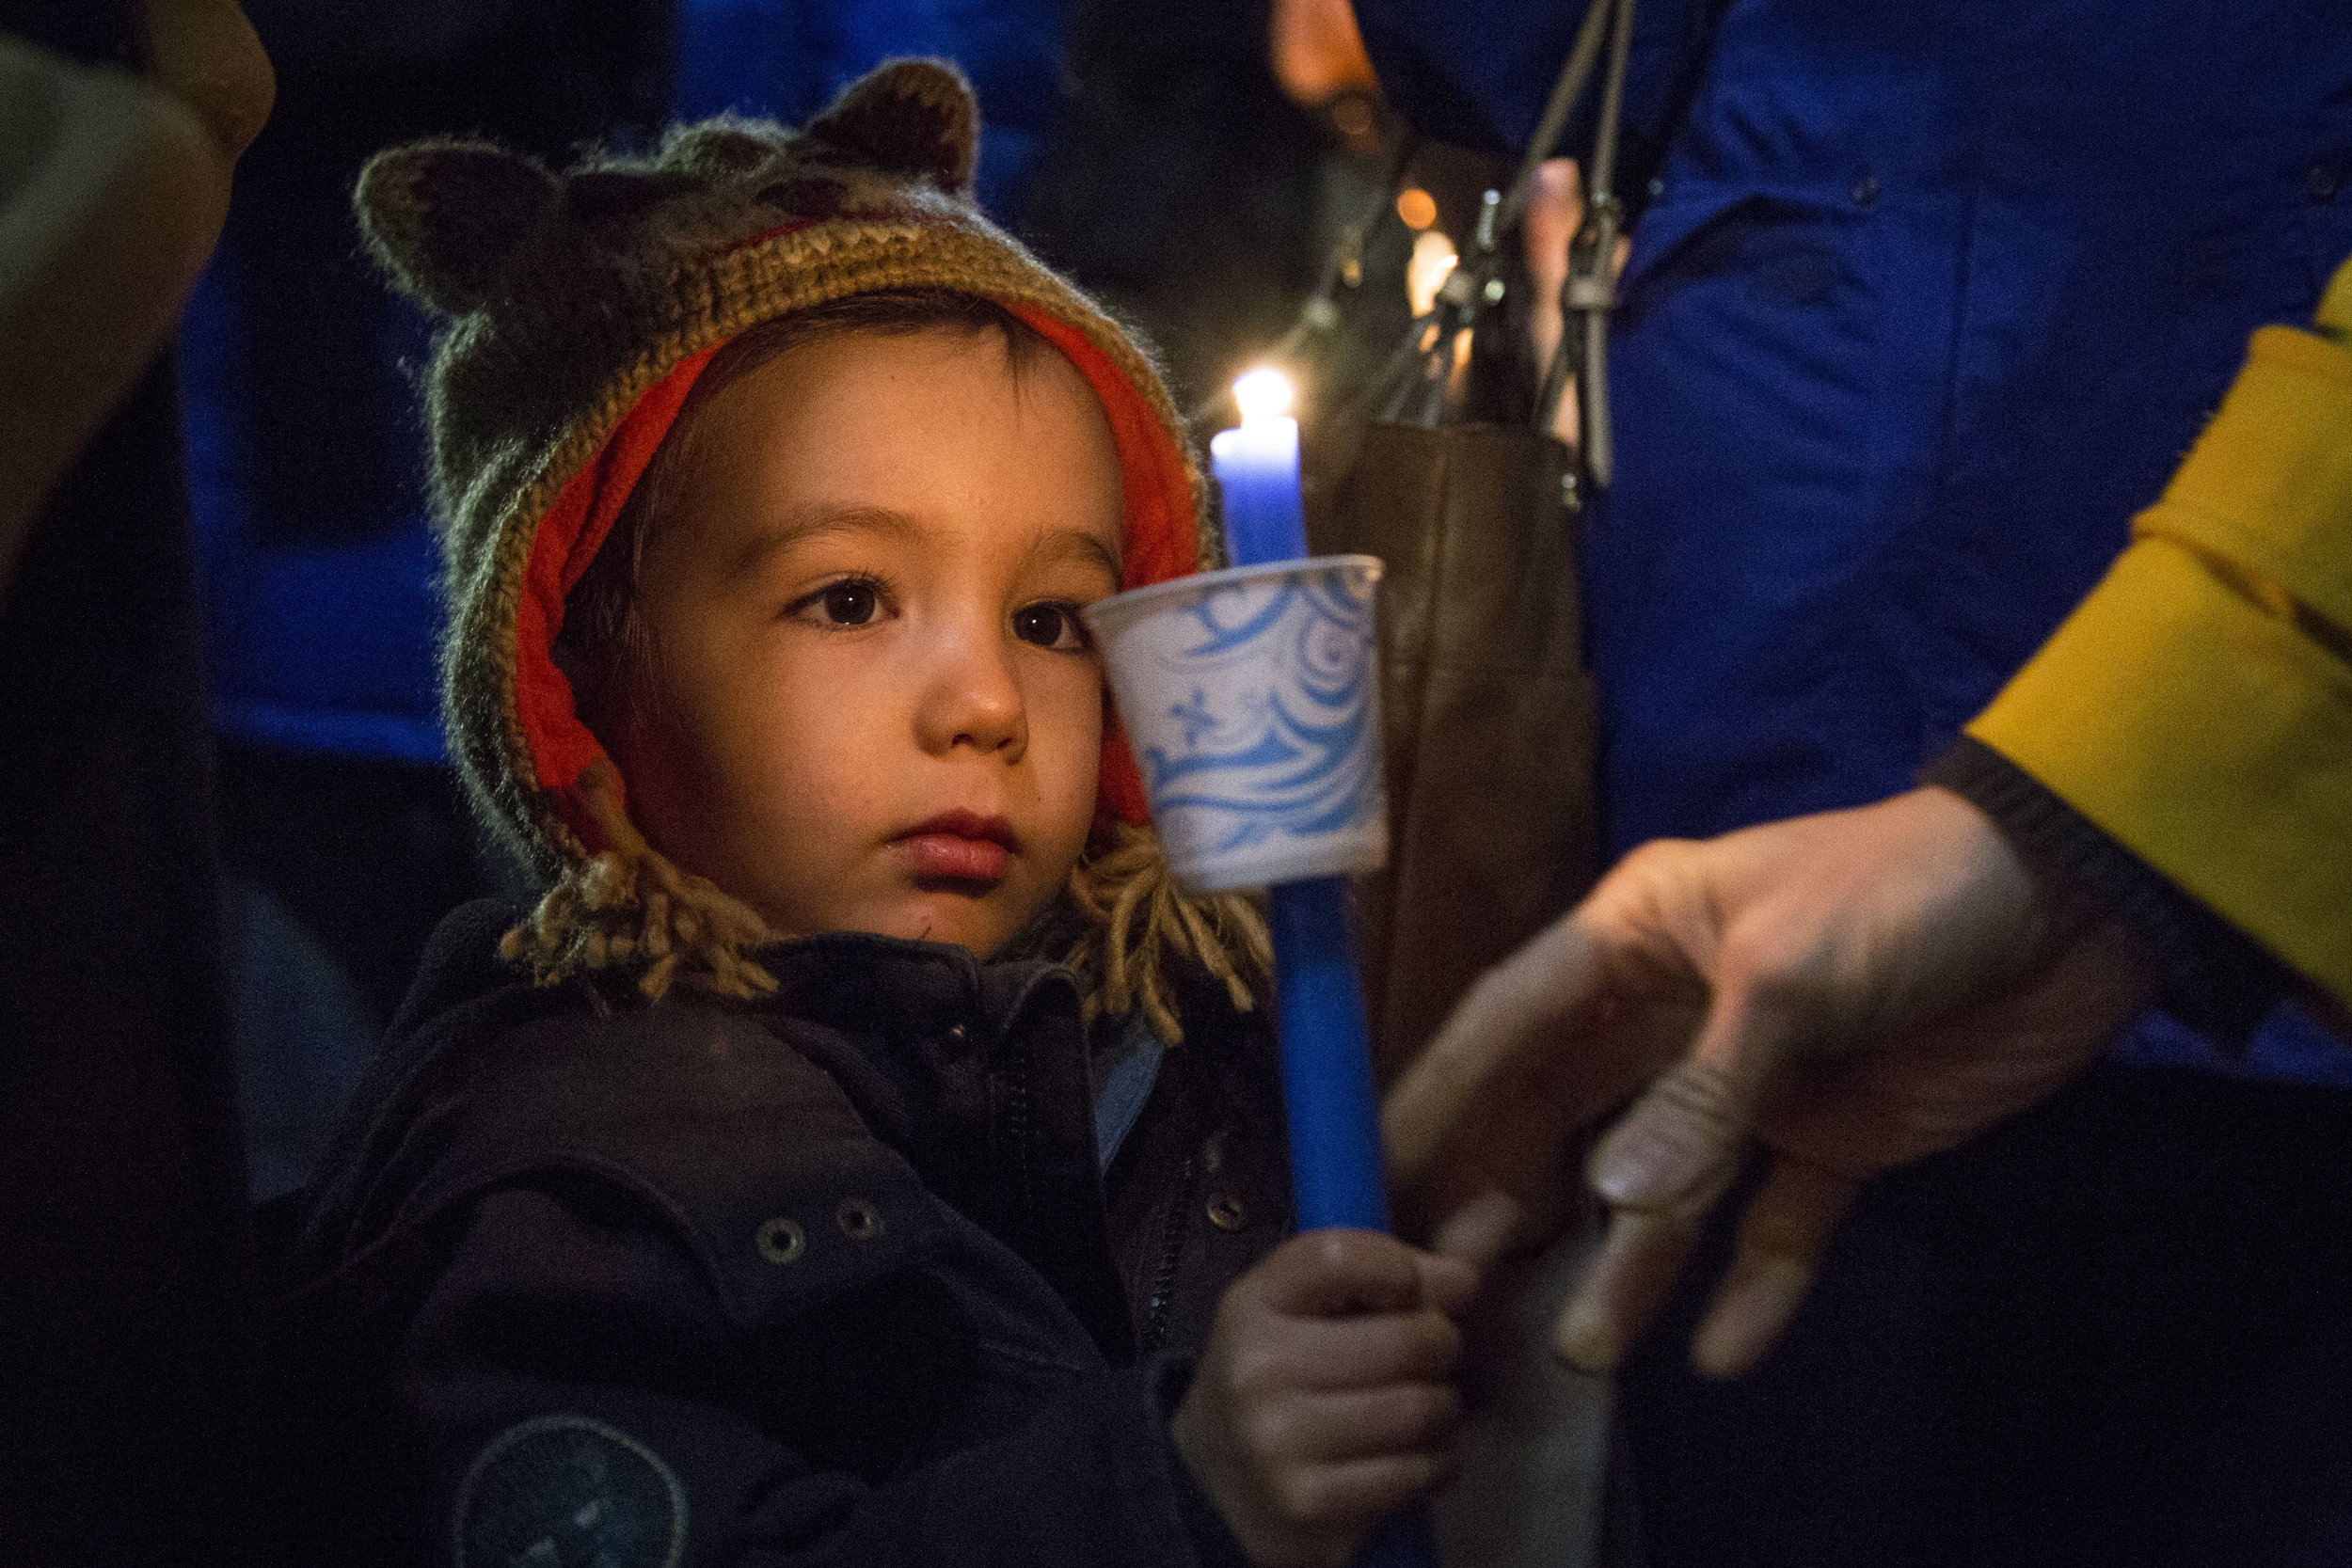 Vigil for Paris Terrorist Attack | November 2015 | Washington, D.C.